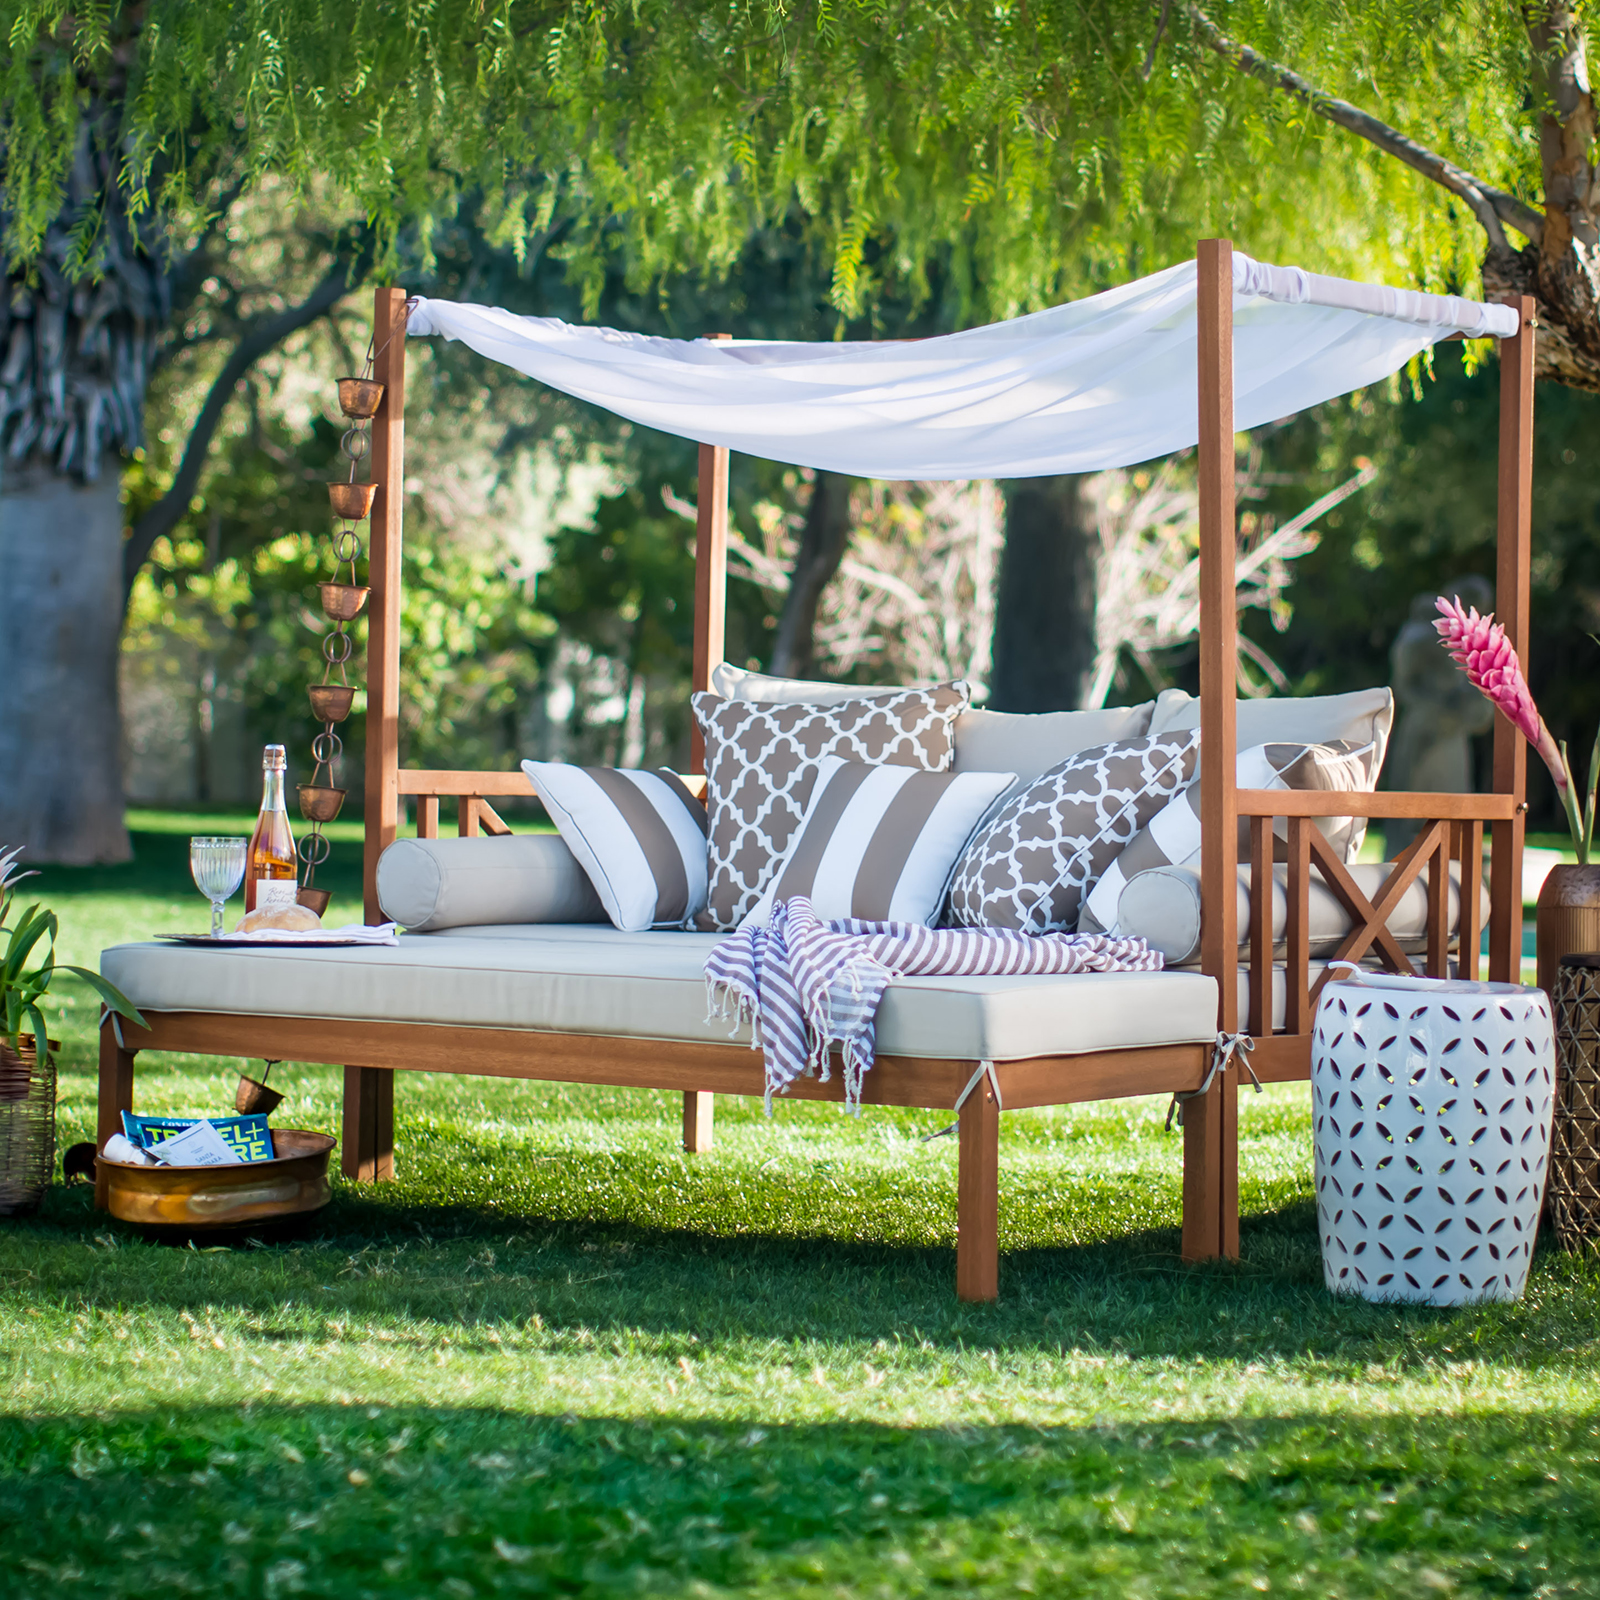 Harmonia Living Wink Canopy Daybed